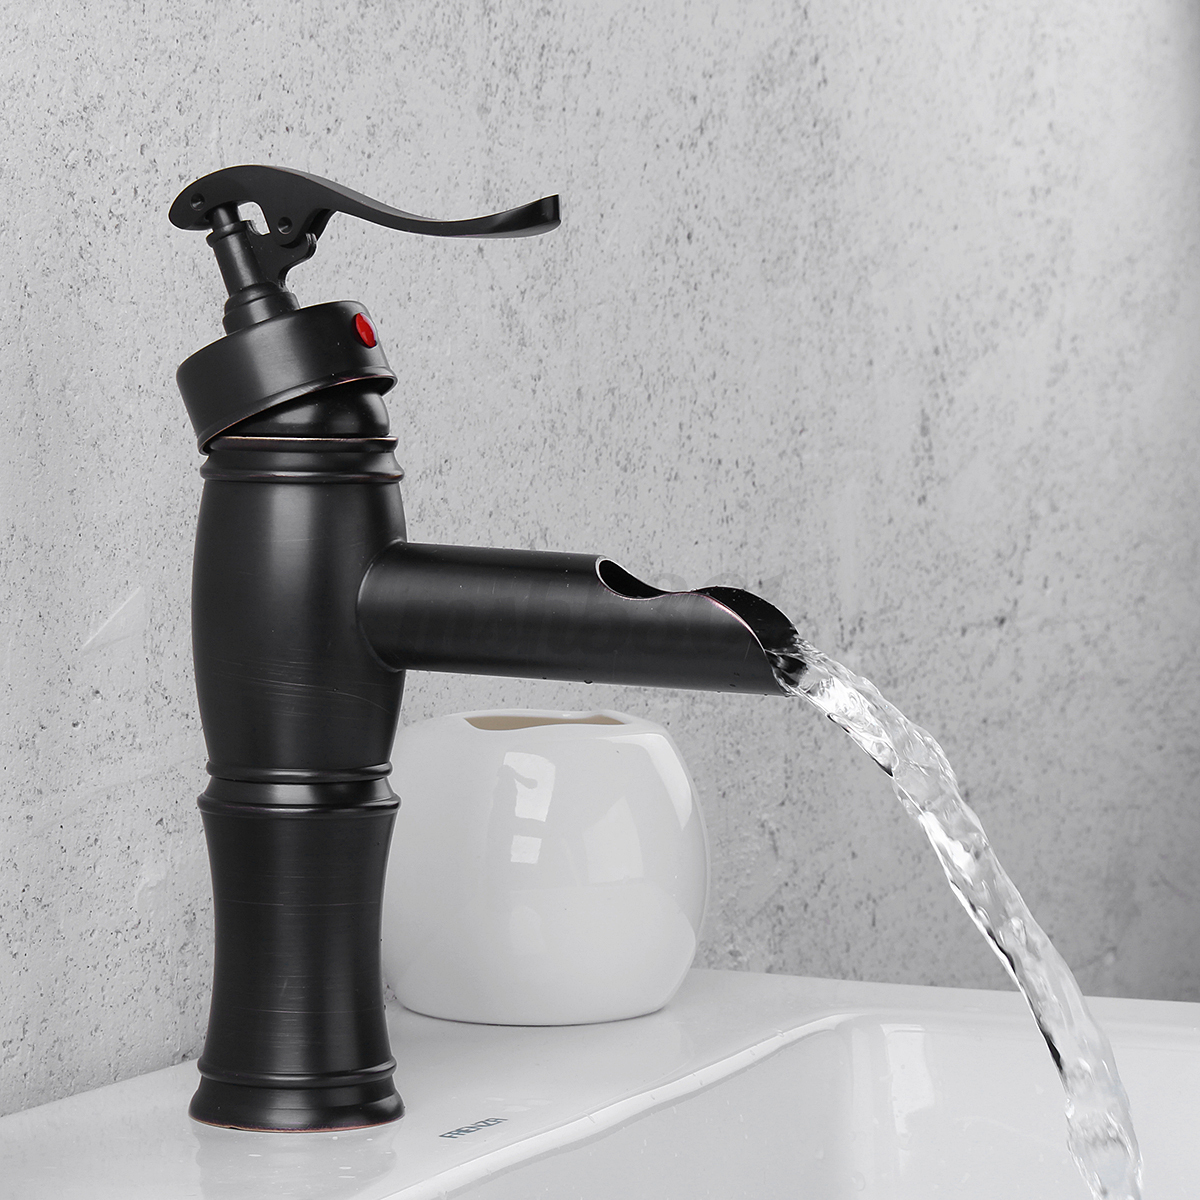 Oil Rubbed Bronze Bathroom/Kitchen Sink Vessel Faucet